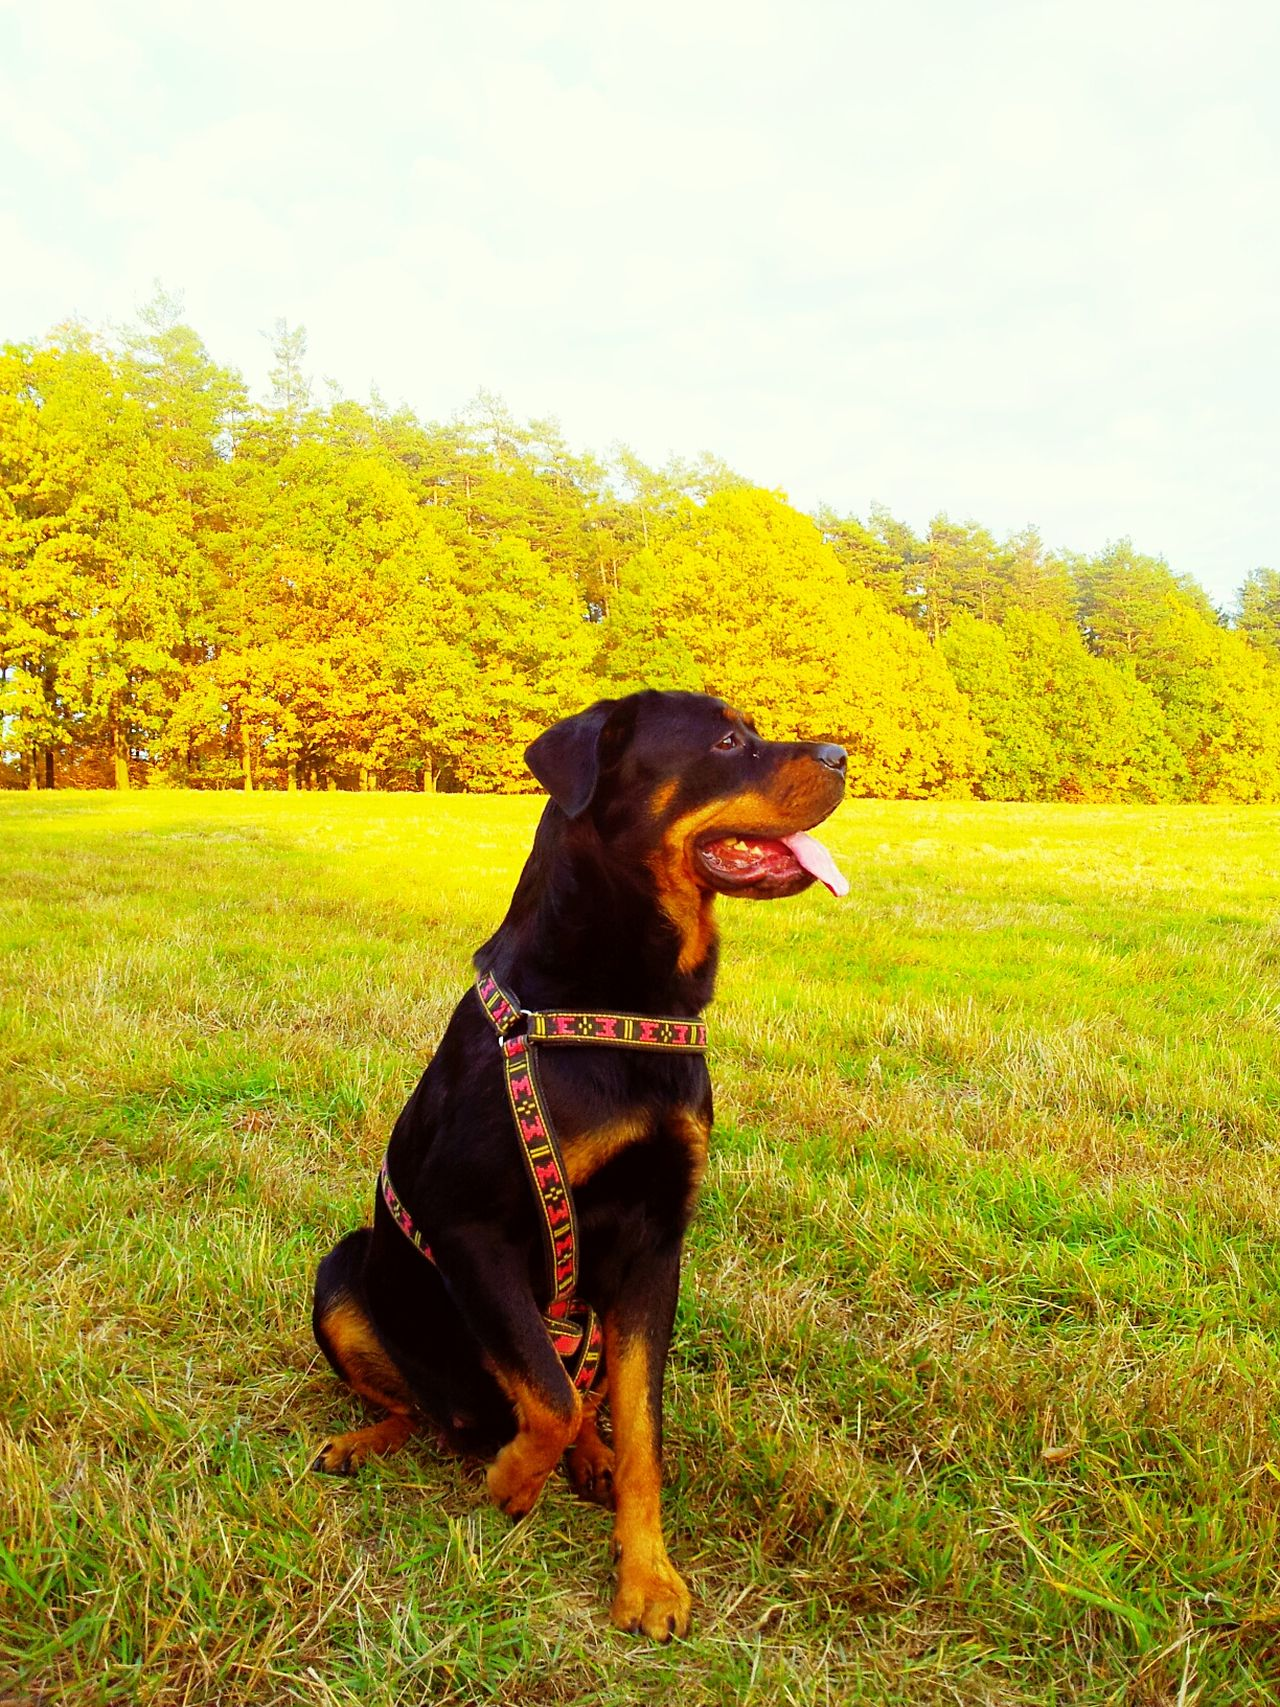 Check This Out Hello World Rottweiler Dog❤ Rottweilerlove RottweilerLovers { My Lovely RottWeiler } Princess ♥